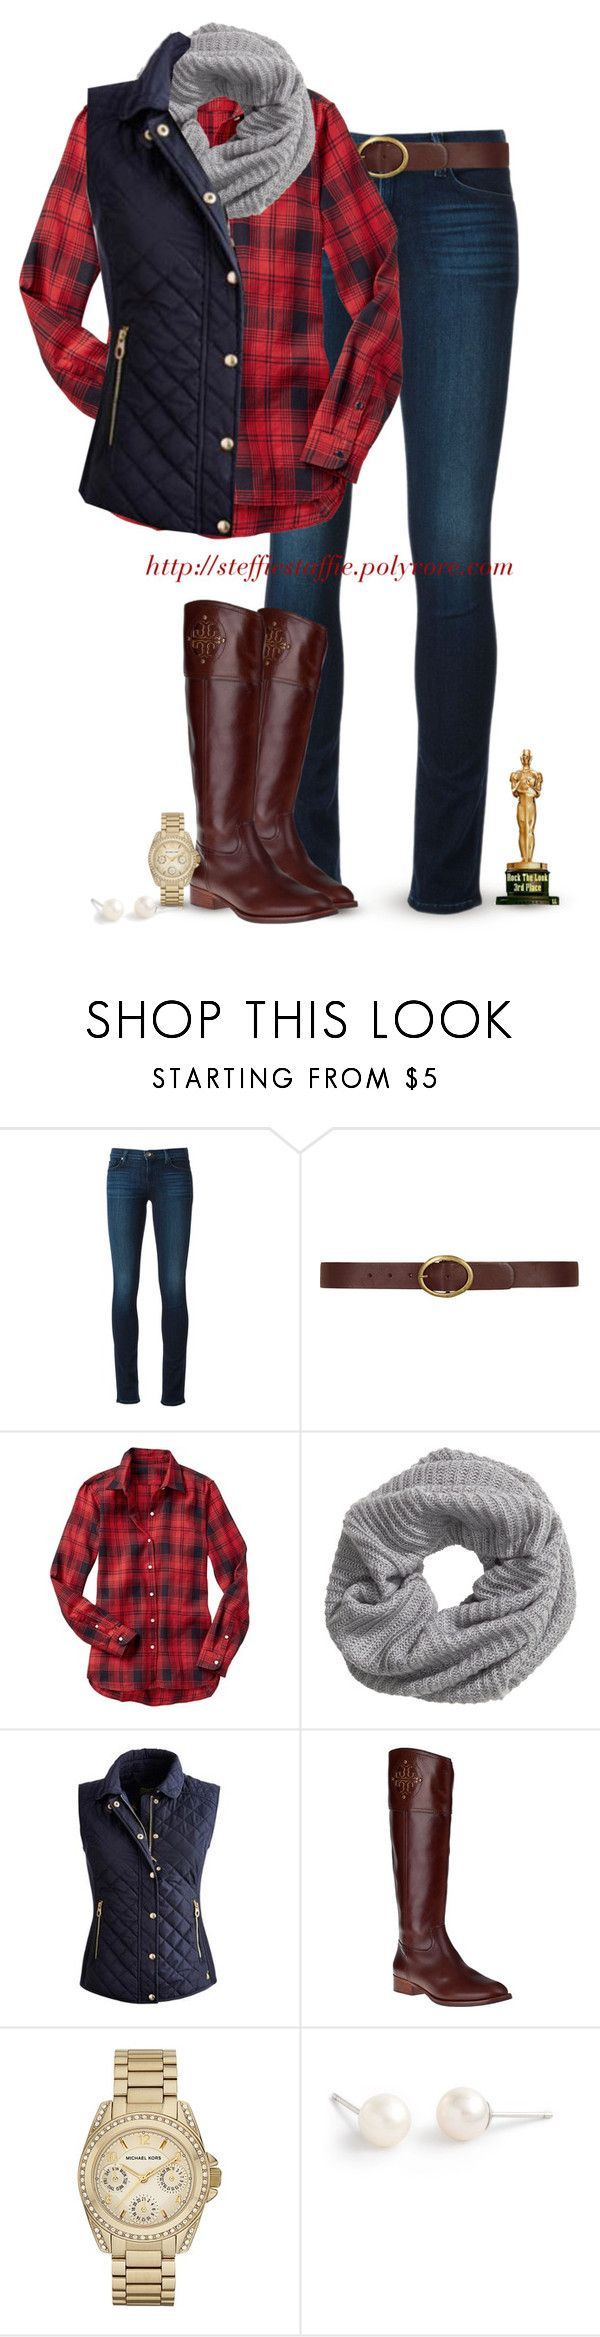 """""""Vest, Plaid, Knit scarf & Riding boots"""" by steffiestaffie ❤ liked on Polyvore featuring J Brand, Dorothy Perkins, Gap, H&M, Joules, Tory Burch, Michael Kors and J.Crew"""